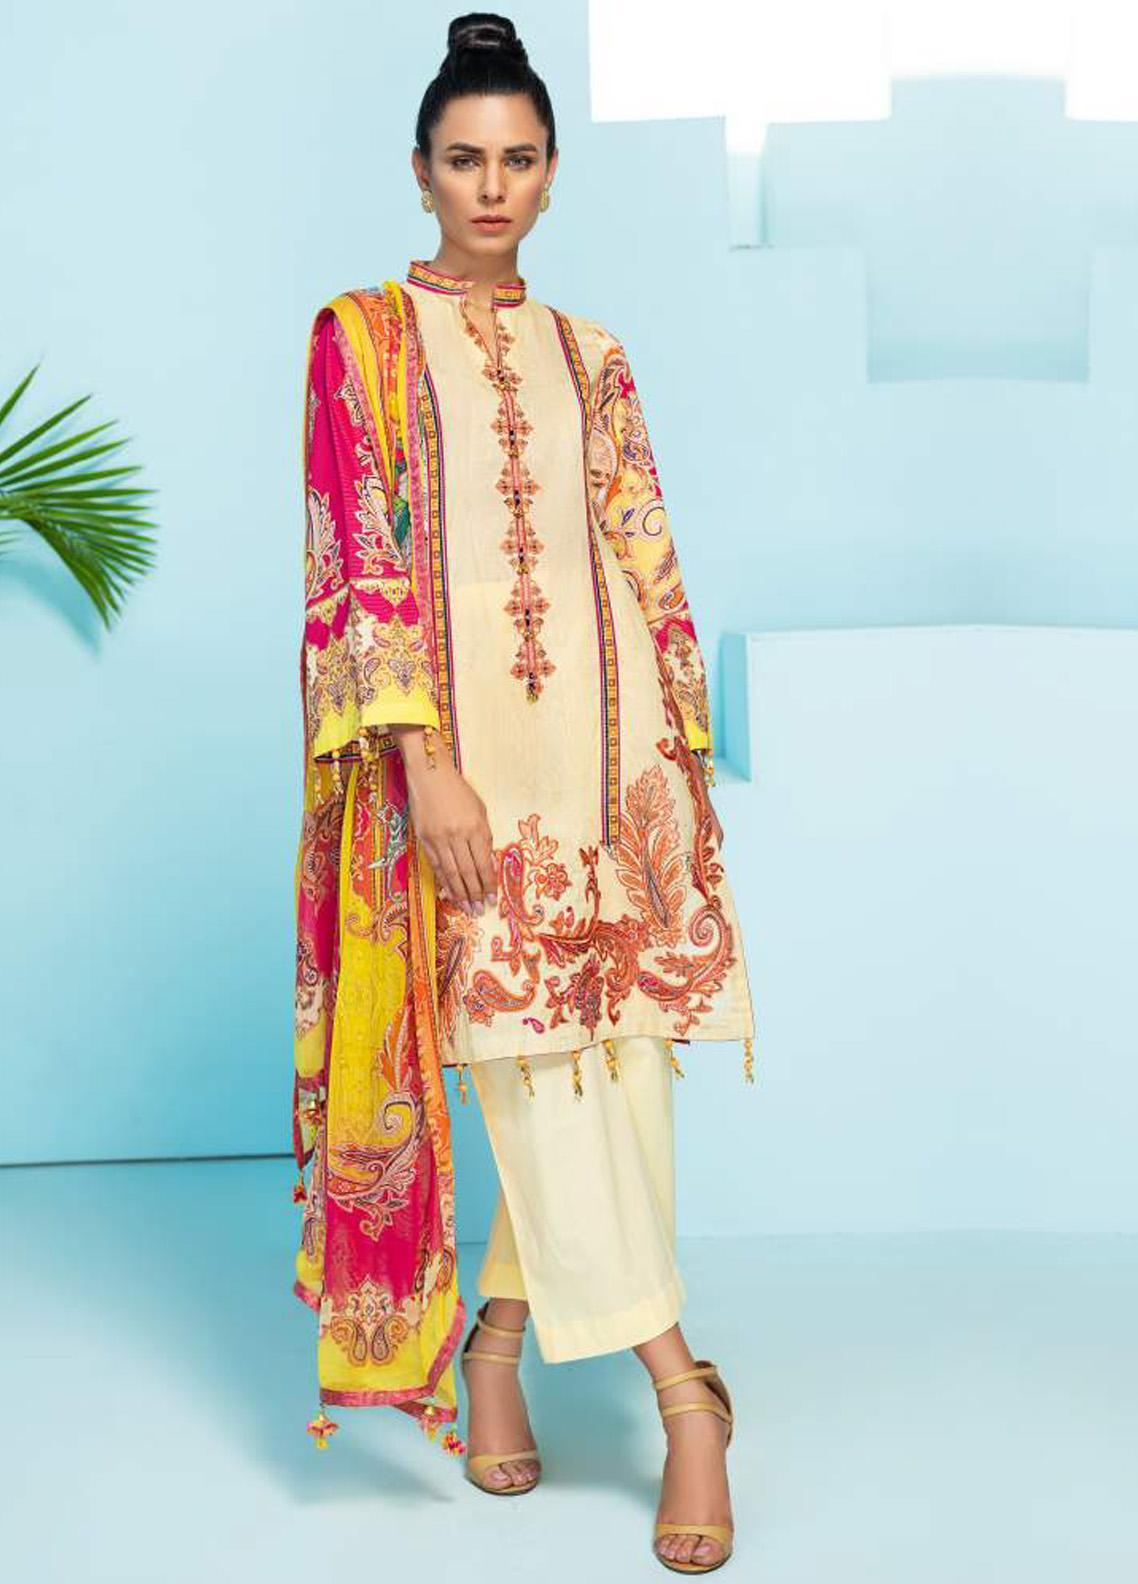 Florence by Rang Rasiya Embroidered Lawn Unstitched 3 Piece Suit RR20SF F551 - Spring / Summer Collection